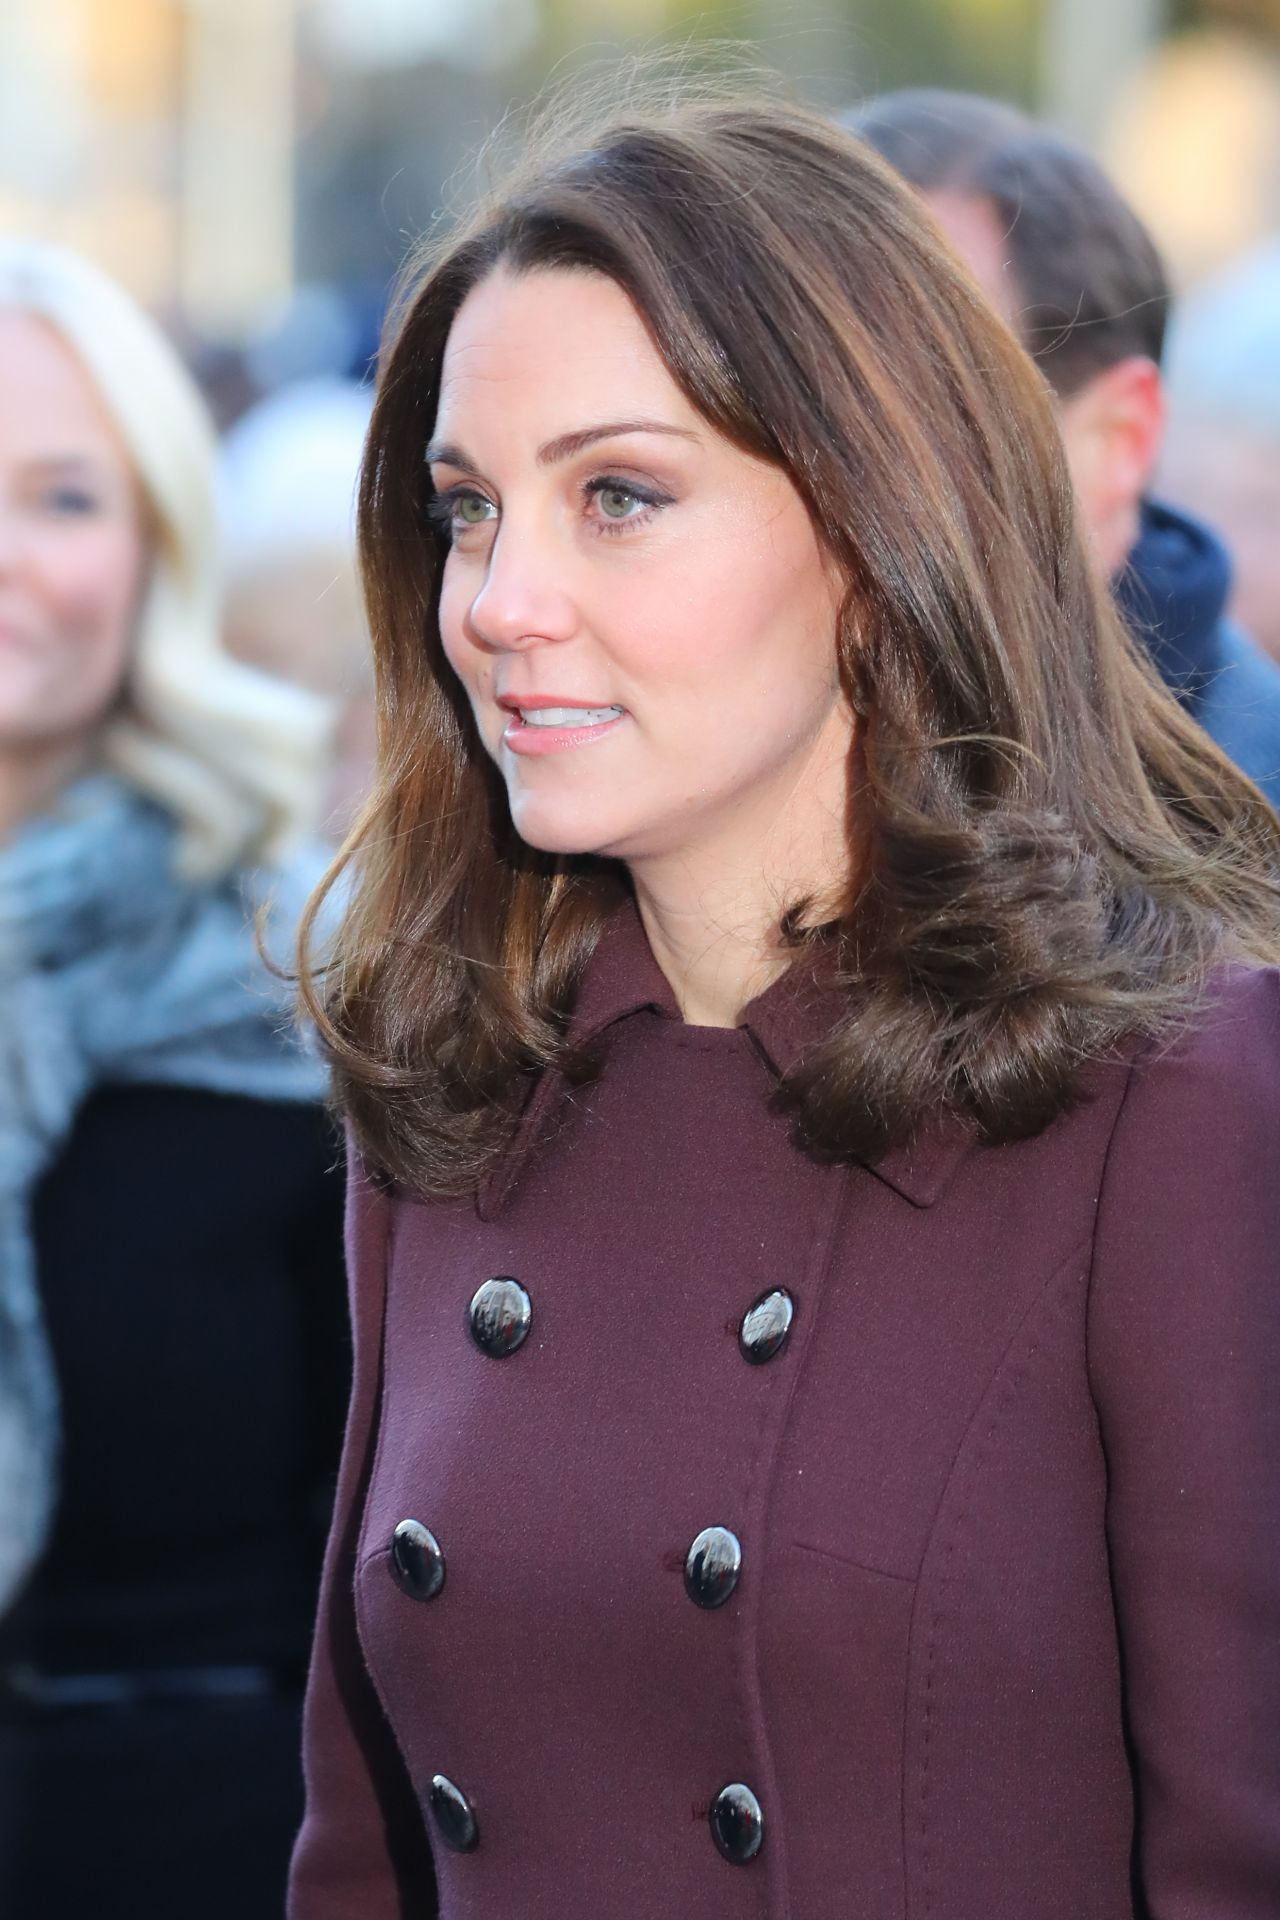 Kate Middleton Visits Hartvig Nissen School In Oslo